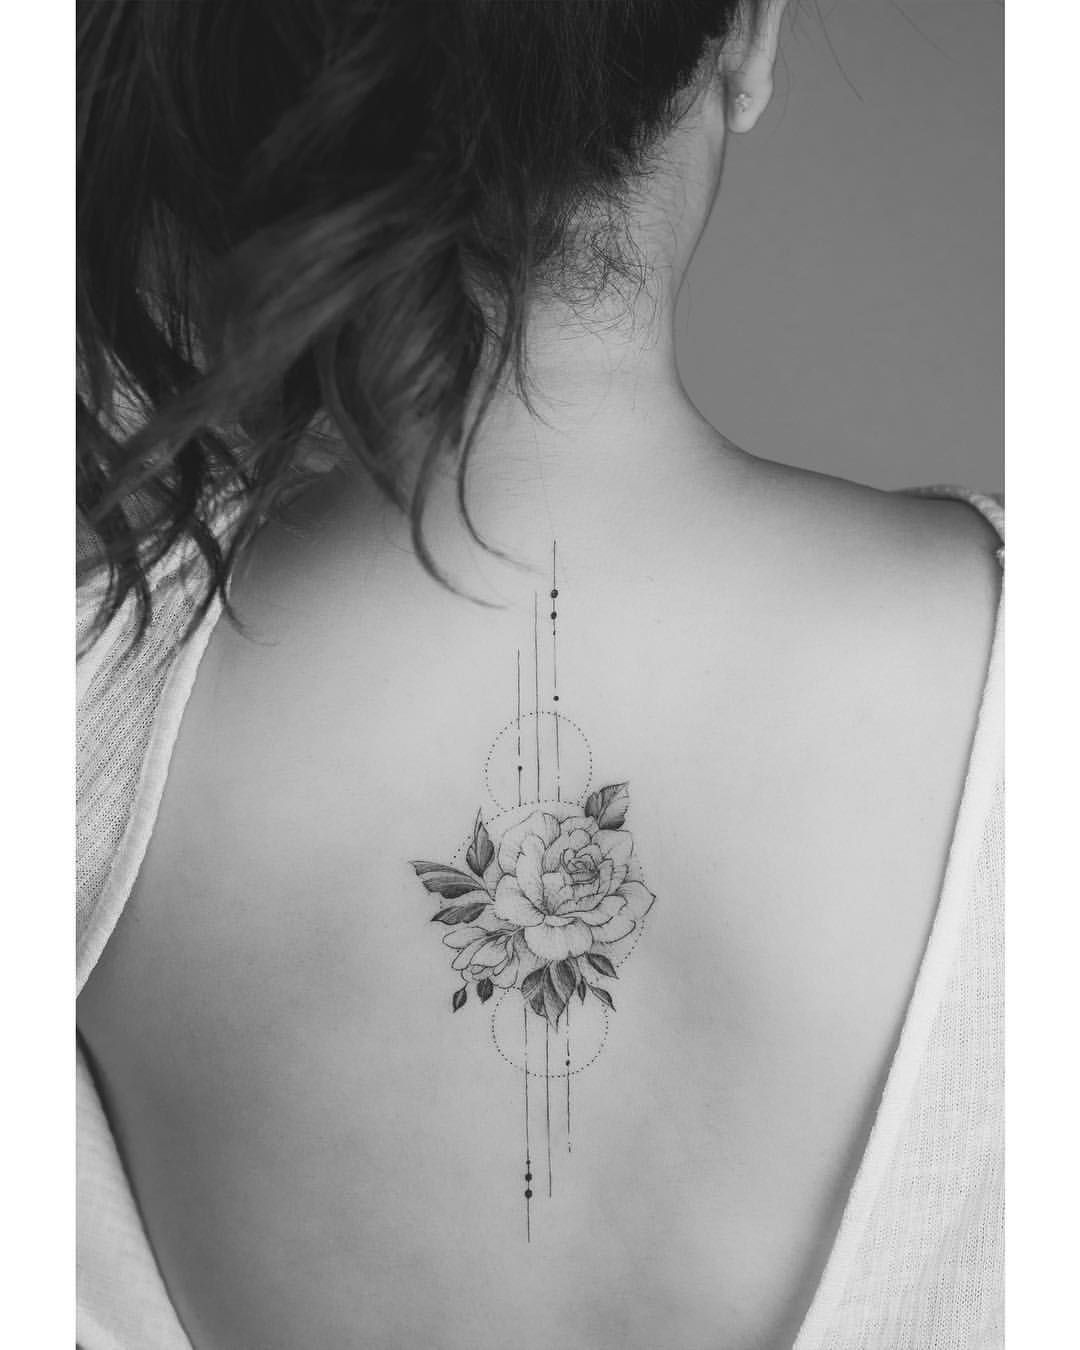 8d6cb9ec87df6 Image result for rose with dream catchers tattoos | tats | Subtle ...